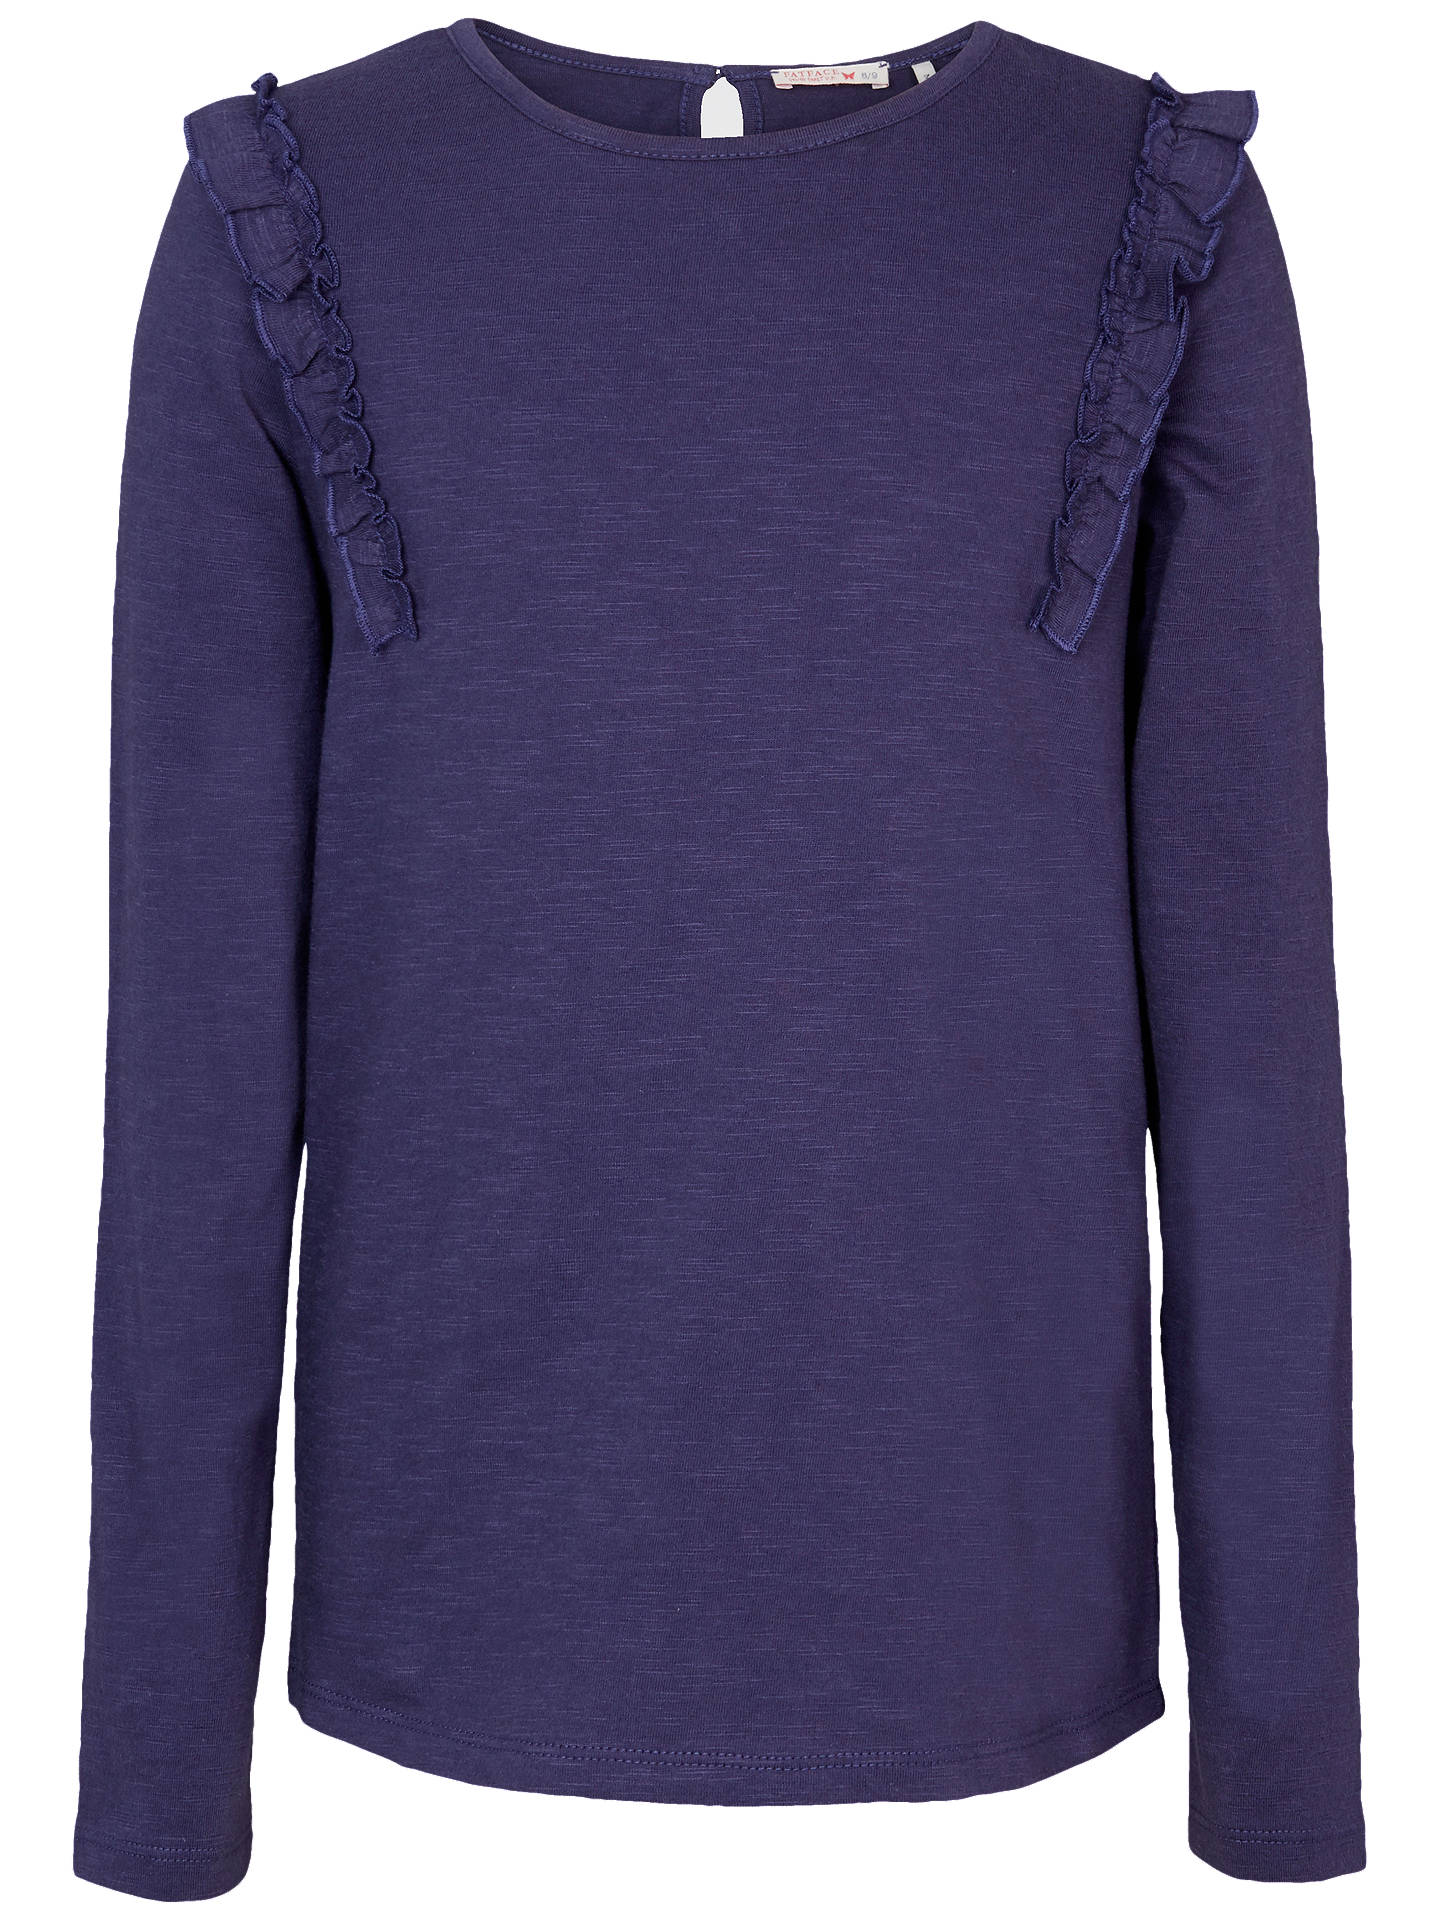 e42984e65 Fat Face Girls  Luise Frill Long Sleeve Top at John Lewis   Partners